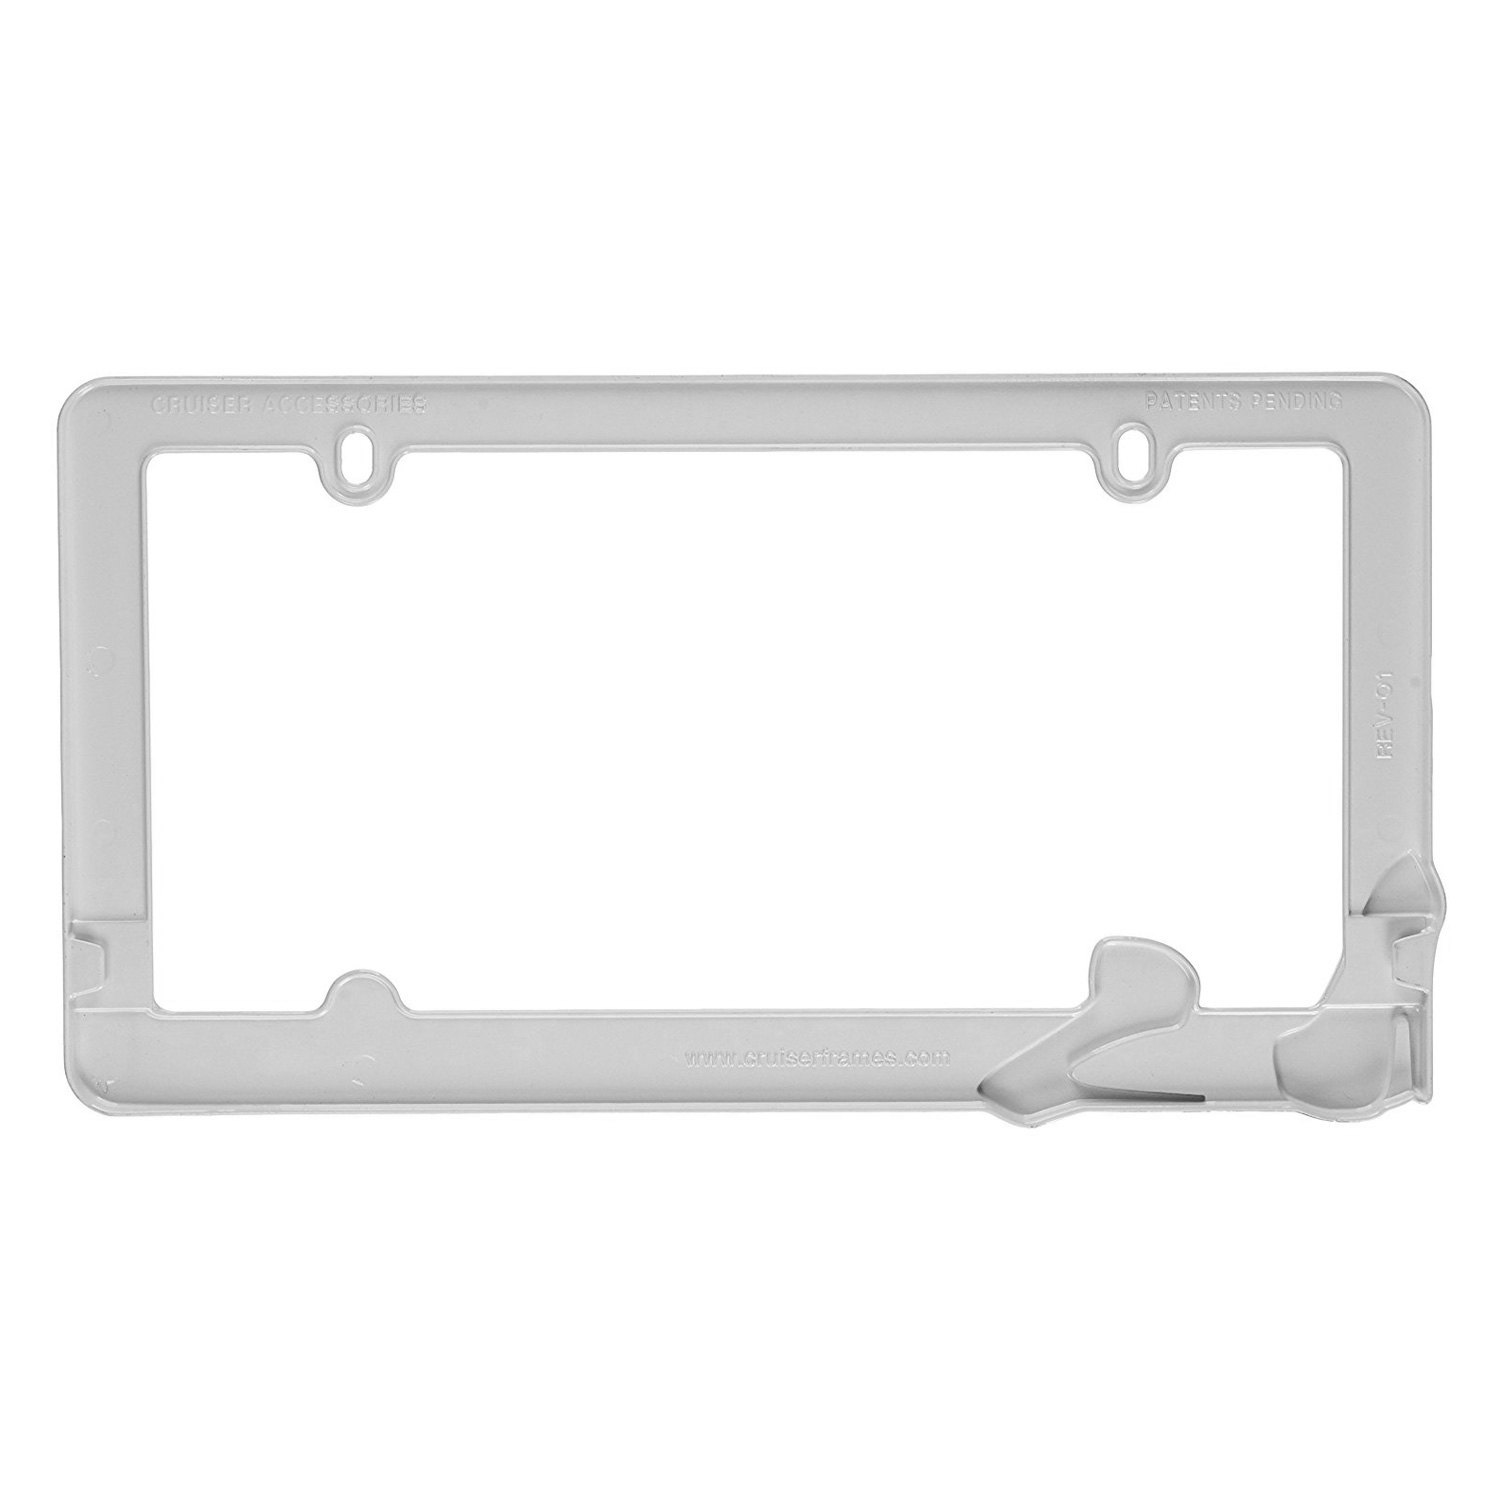 Cruiser 174 22001 Stiletto Style White License Plate Frame